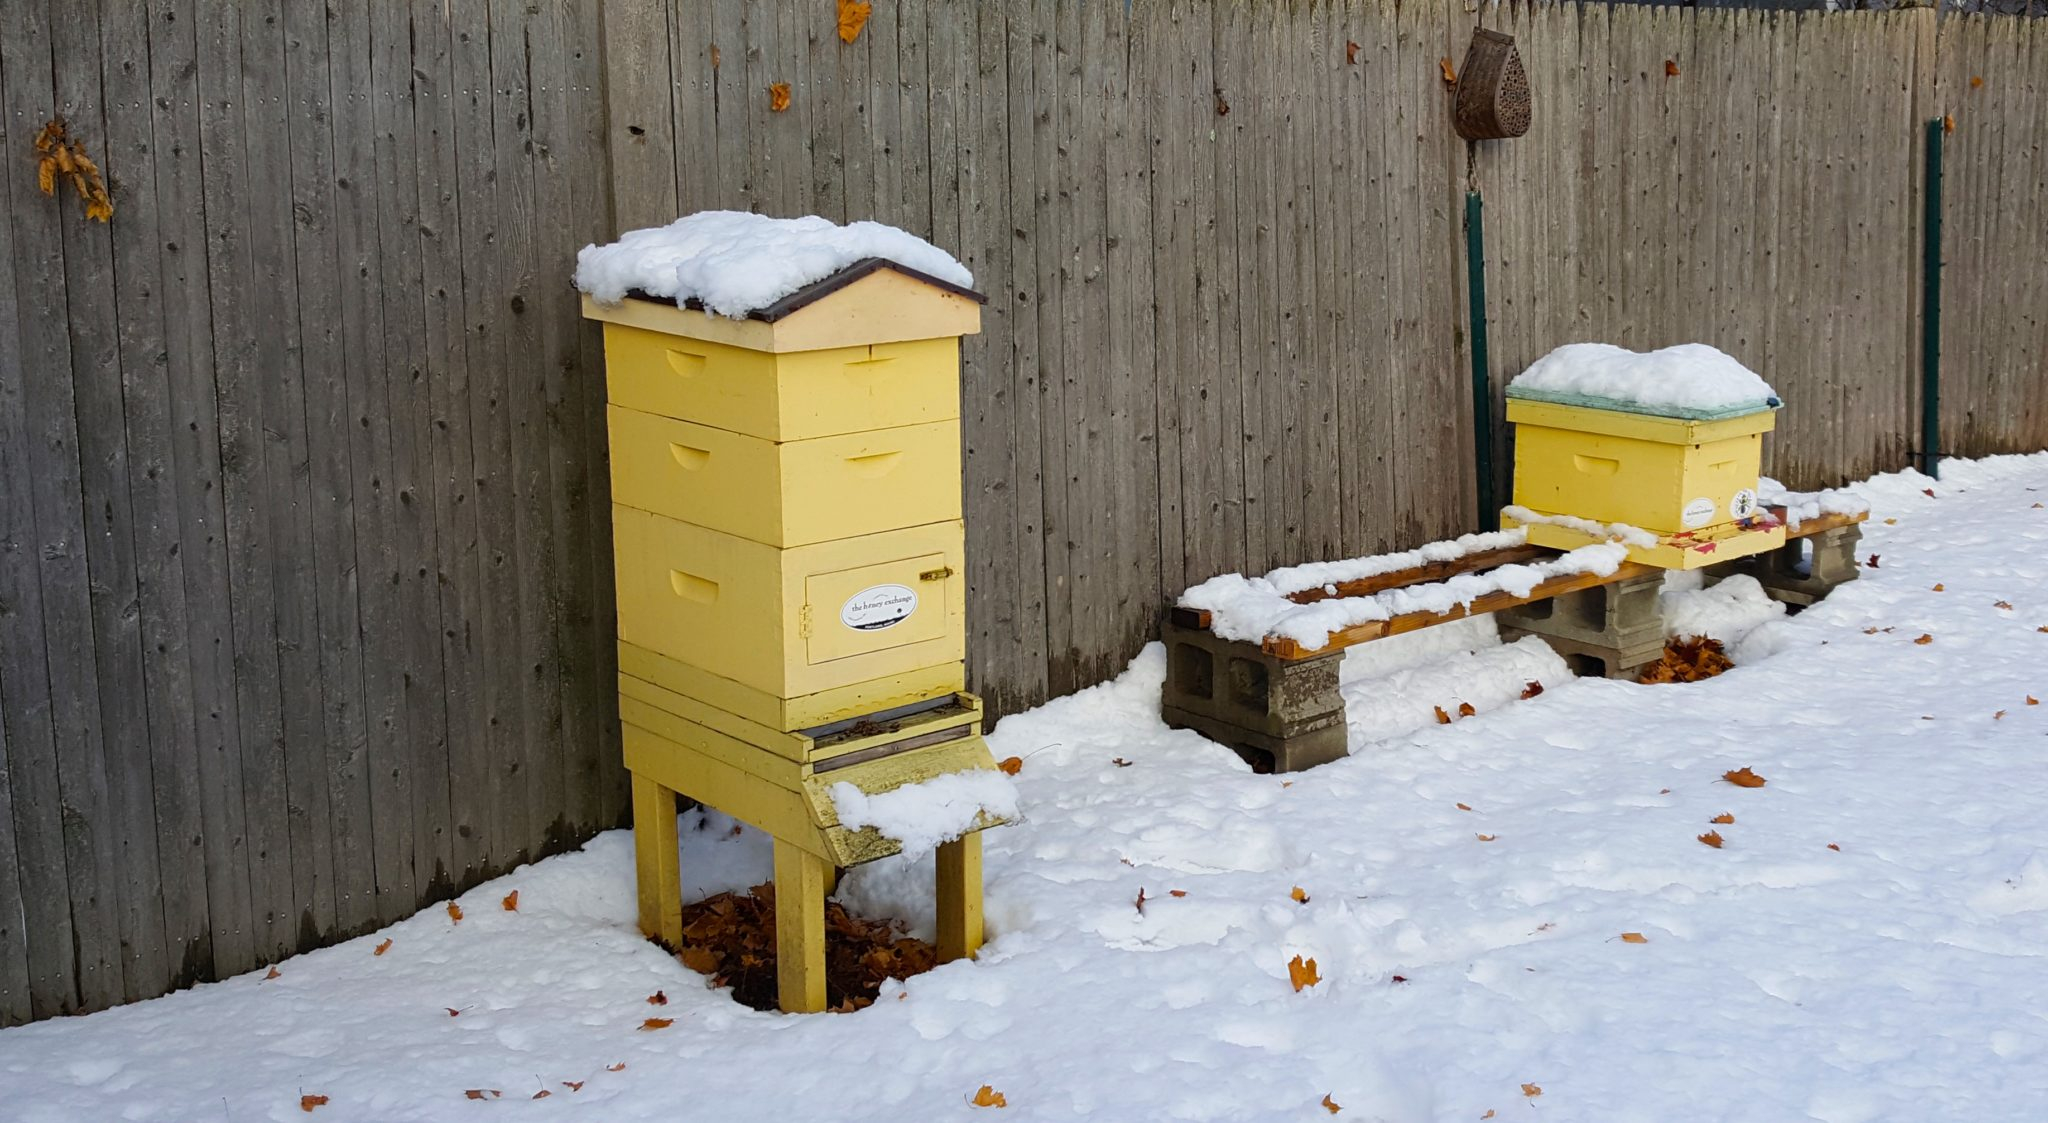 What happens to bees in winter?